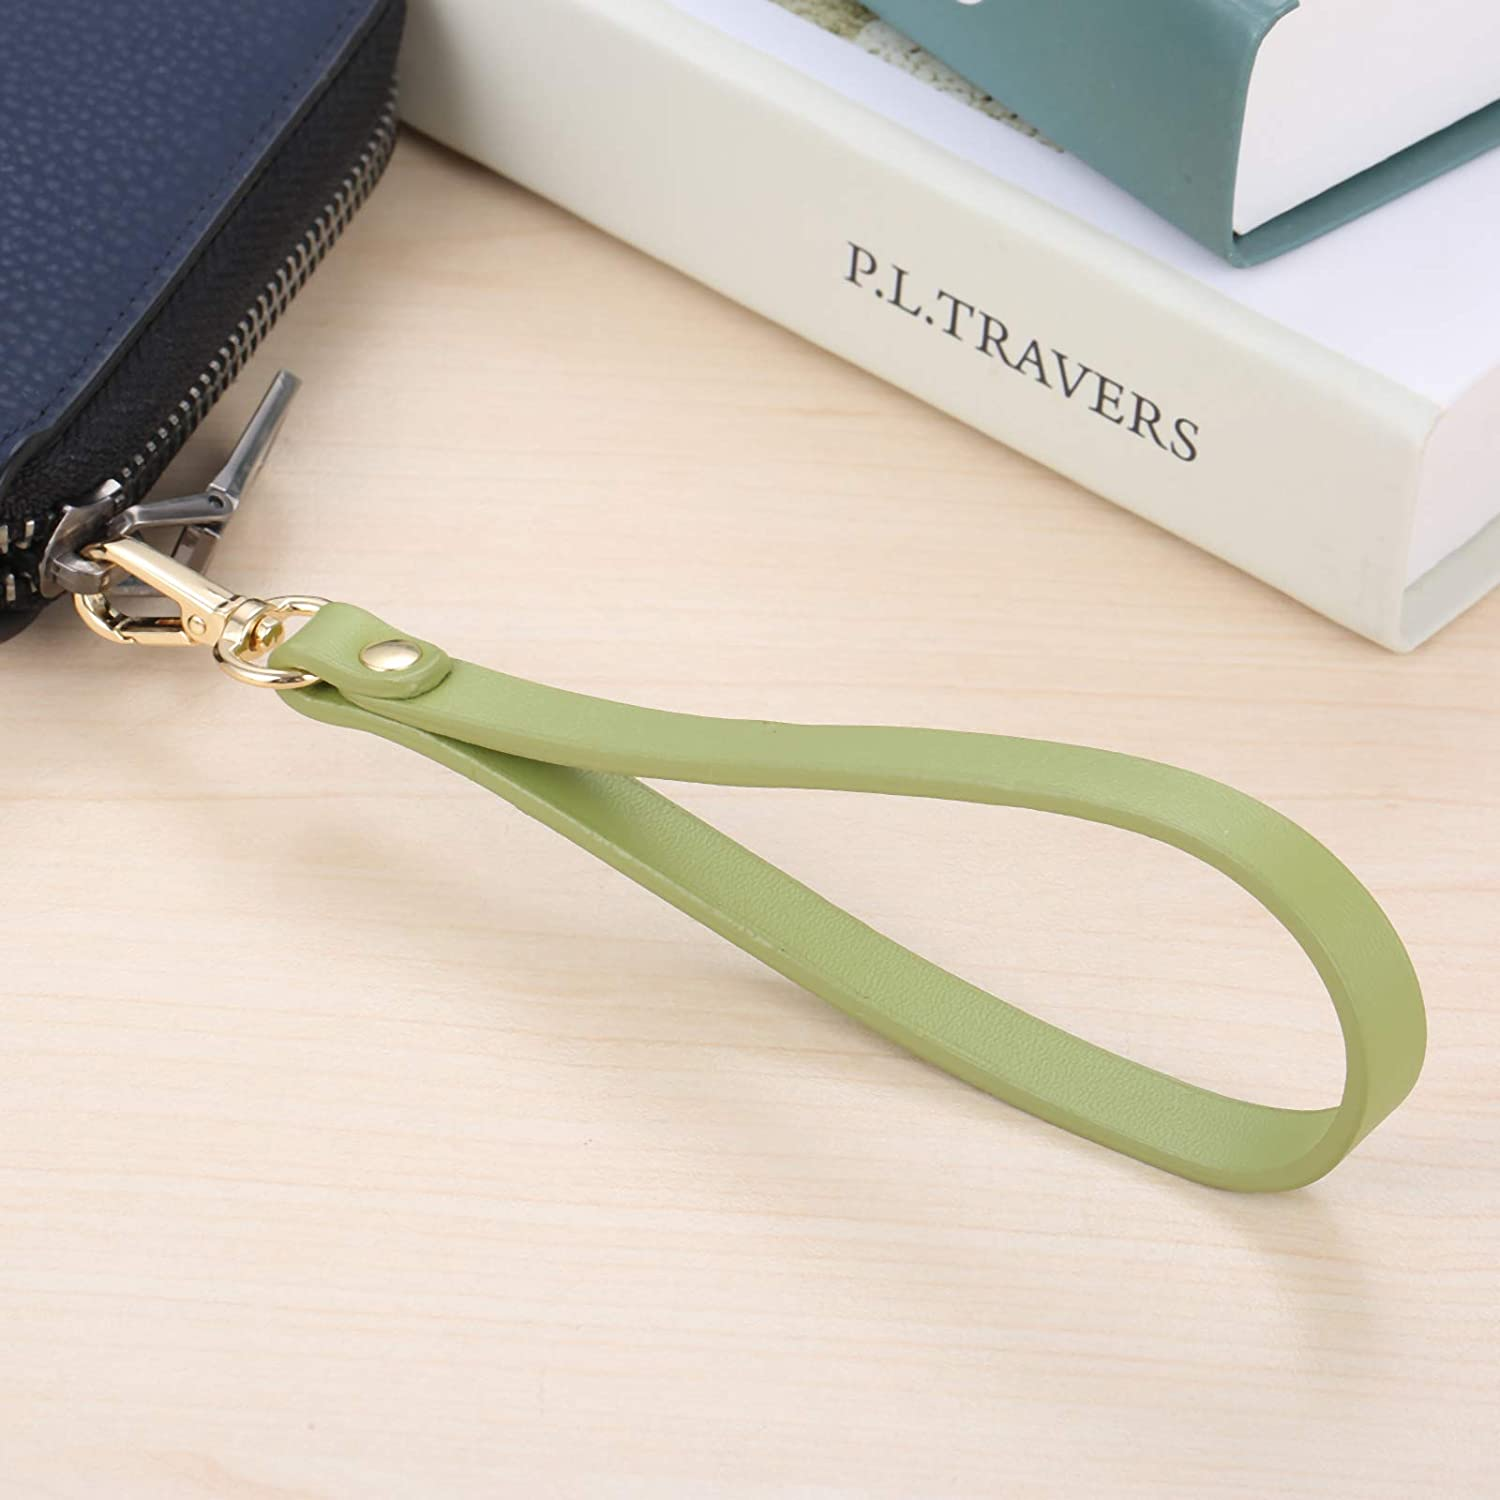 15 0.8cm Short Purse Strap Genuine Leather Wristlet Keychain Handle Rope for Purse Wallet DIY Accessory Tan